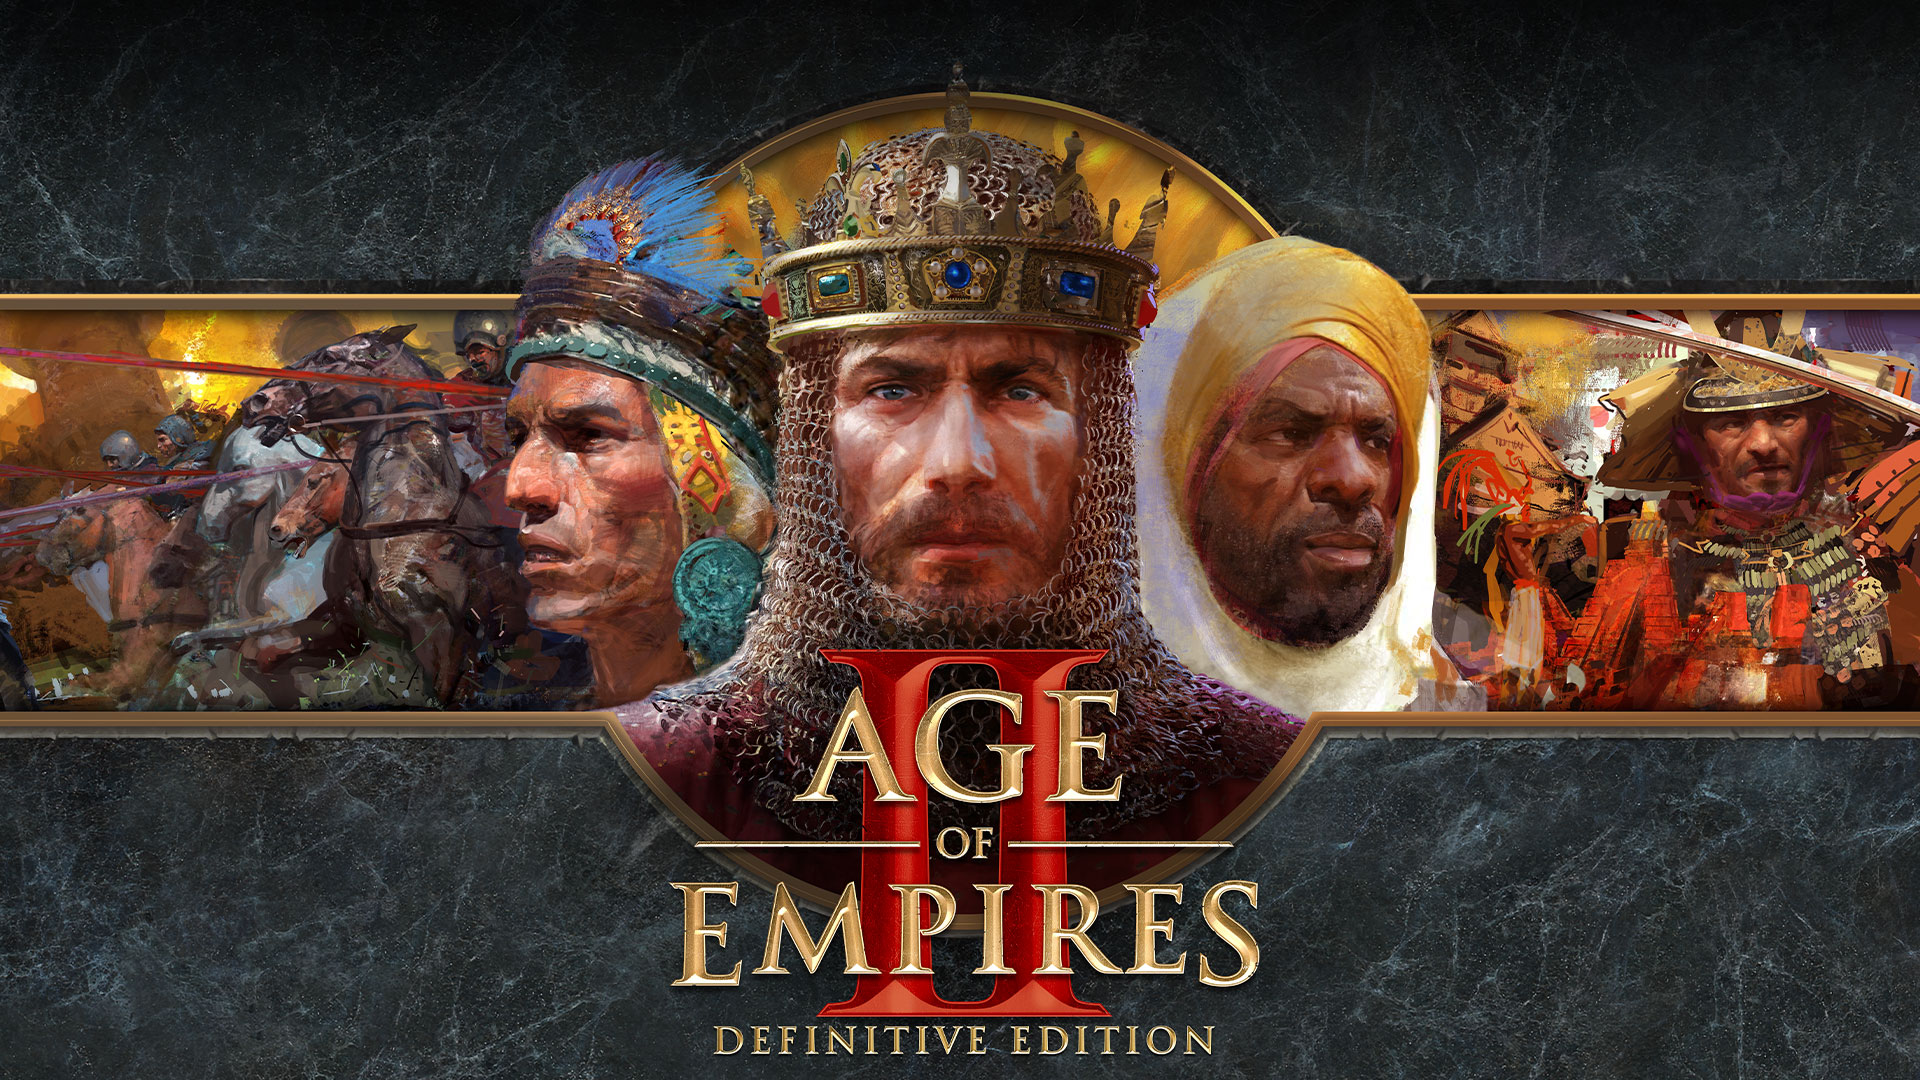 Logo di Age of Empires II Definitive Edition con rappresentazioni artistiche di fazioni in guerra